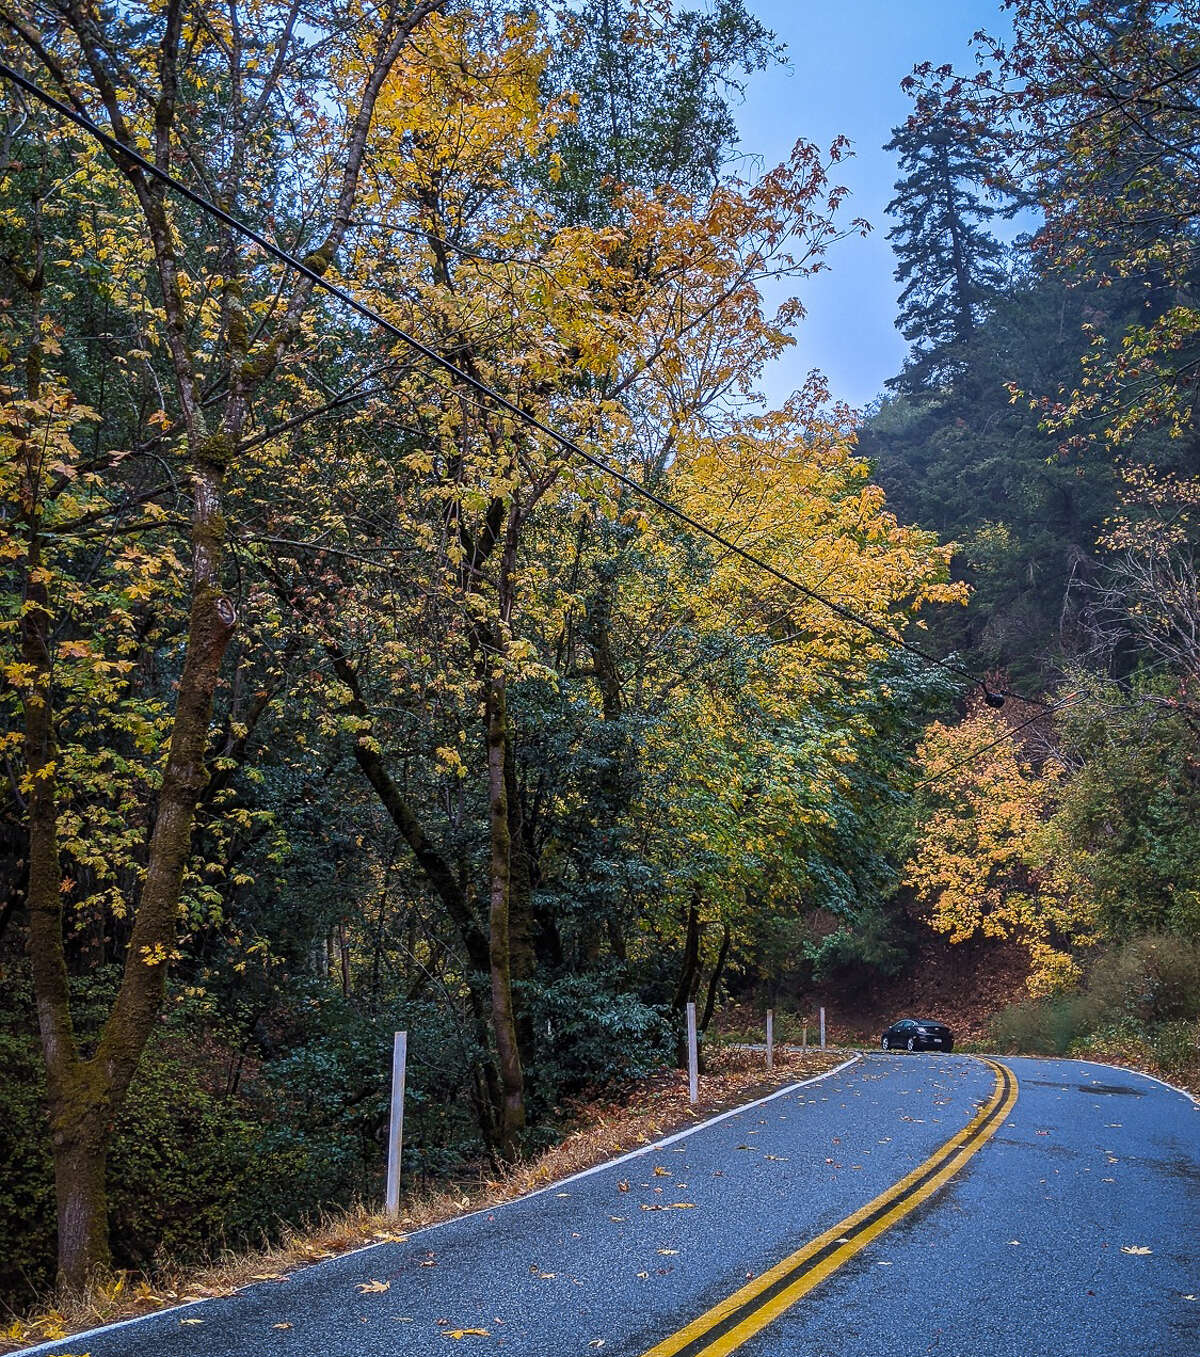 Vishal Mishra founds some beautiful fall foliage along Stevens Canyon Road in Cupertino on Nov. 13, 2020.